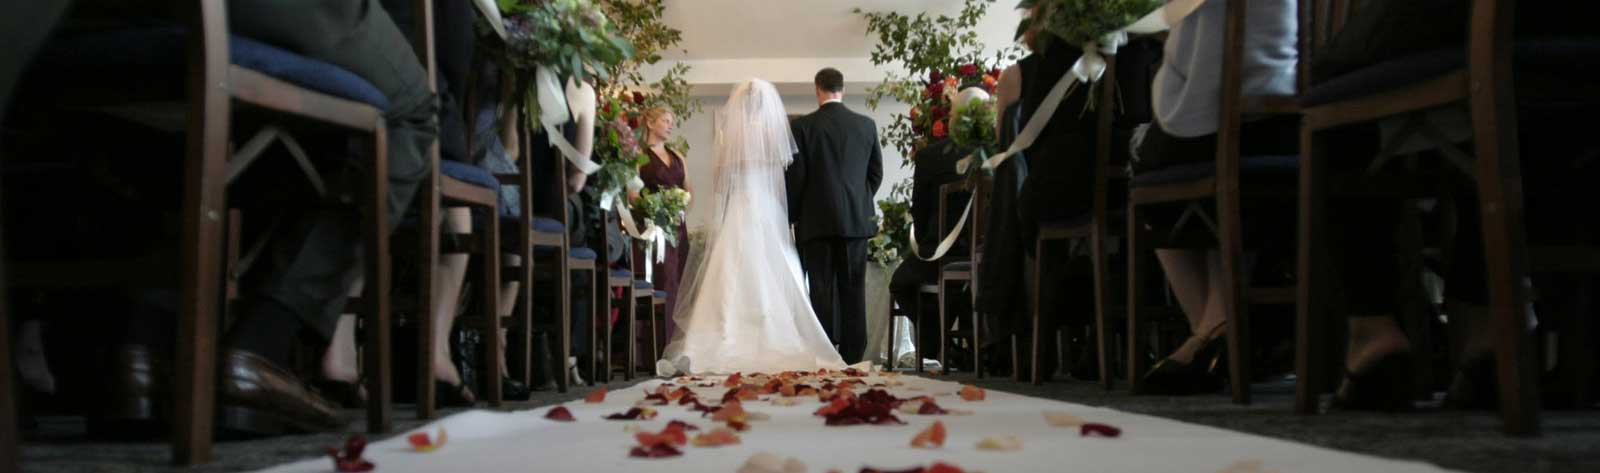 California Wedding Planning Services